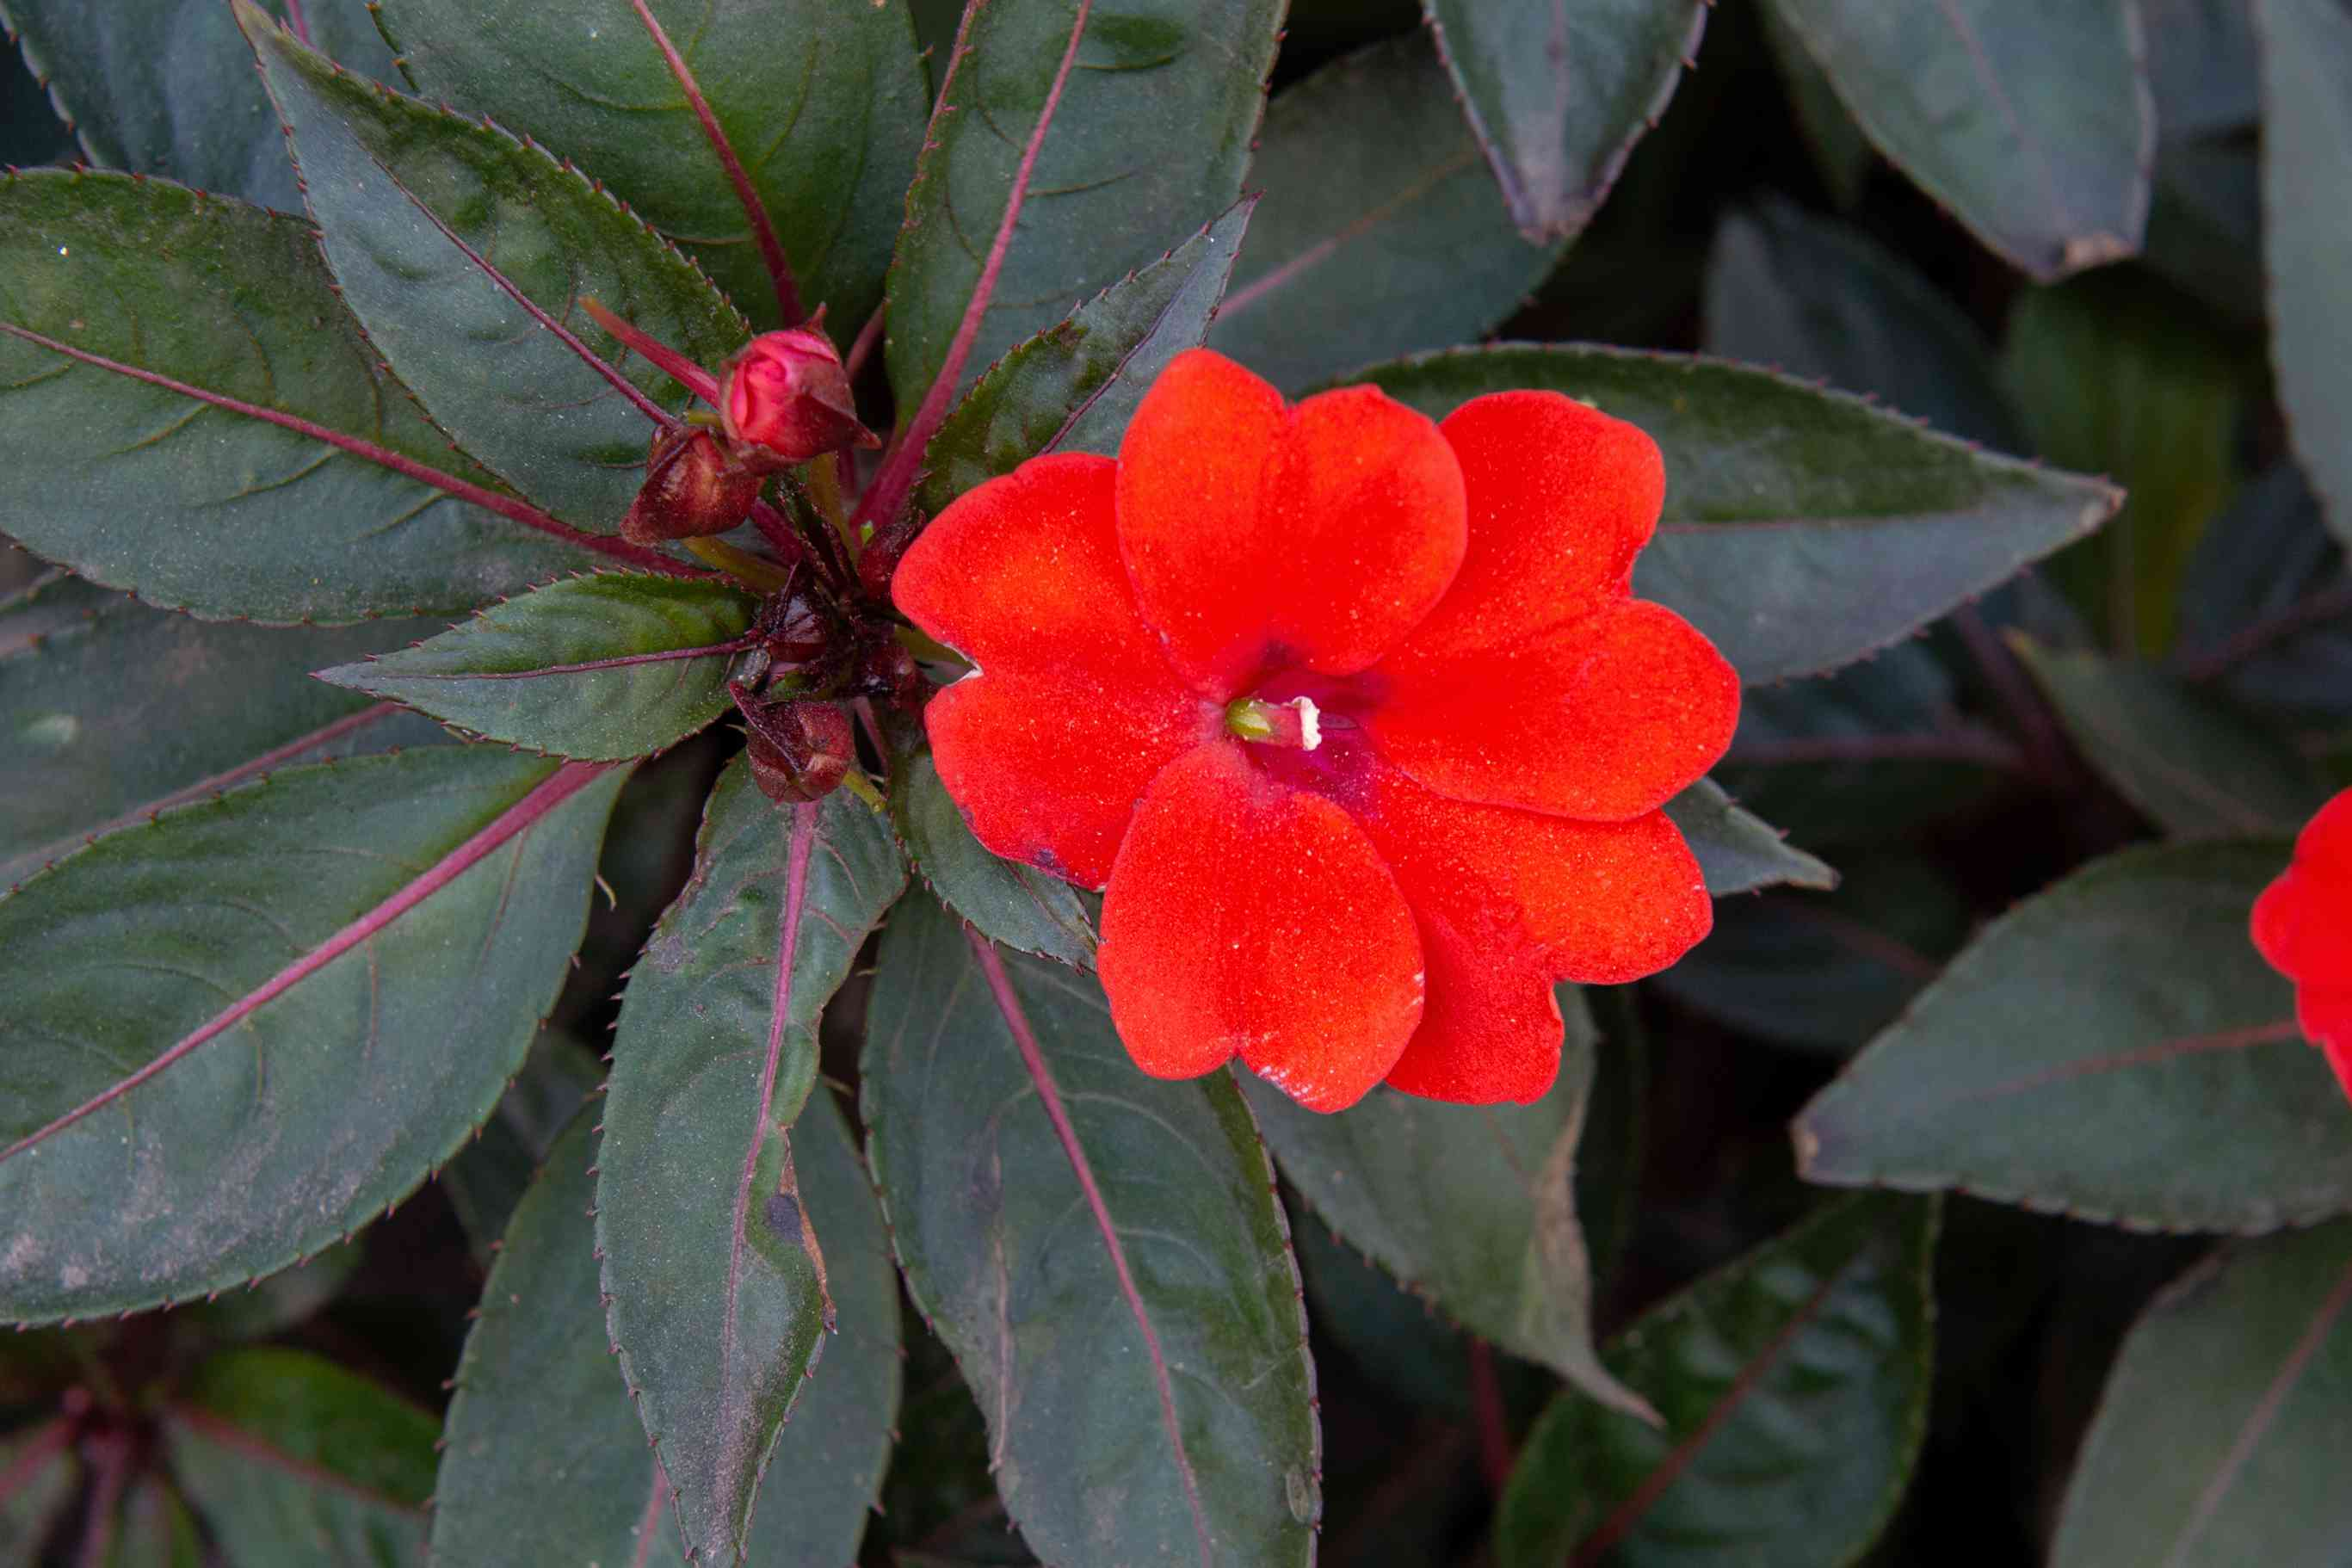 SunPatiens flower with bright red flower next to pink bud and dark green leaves with pink stripe closeup